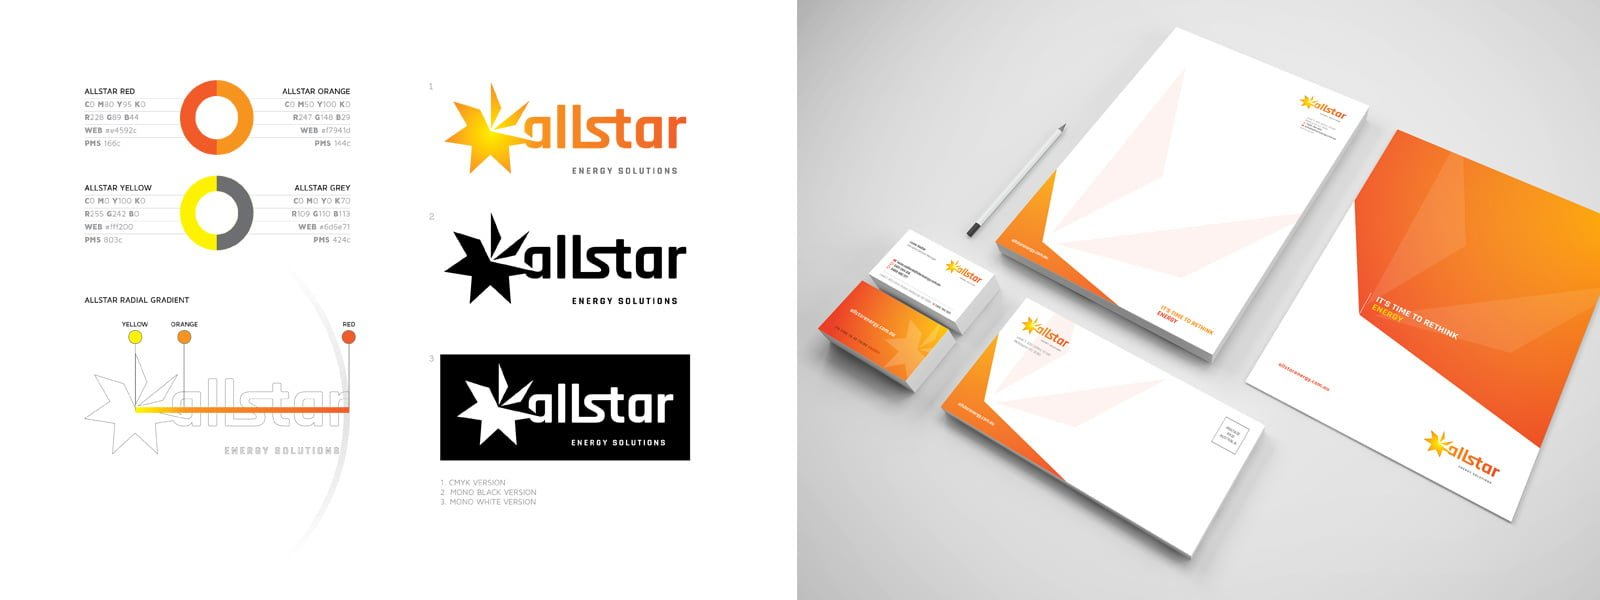 Allstar Energy New Brand by Zephyrmedia